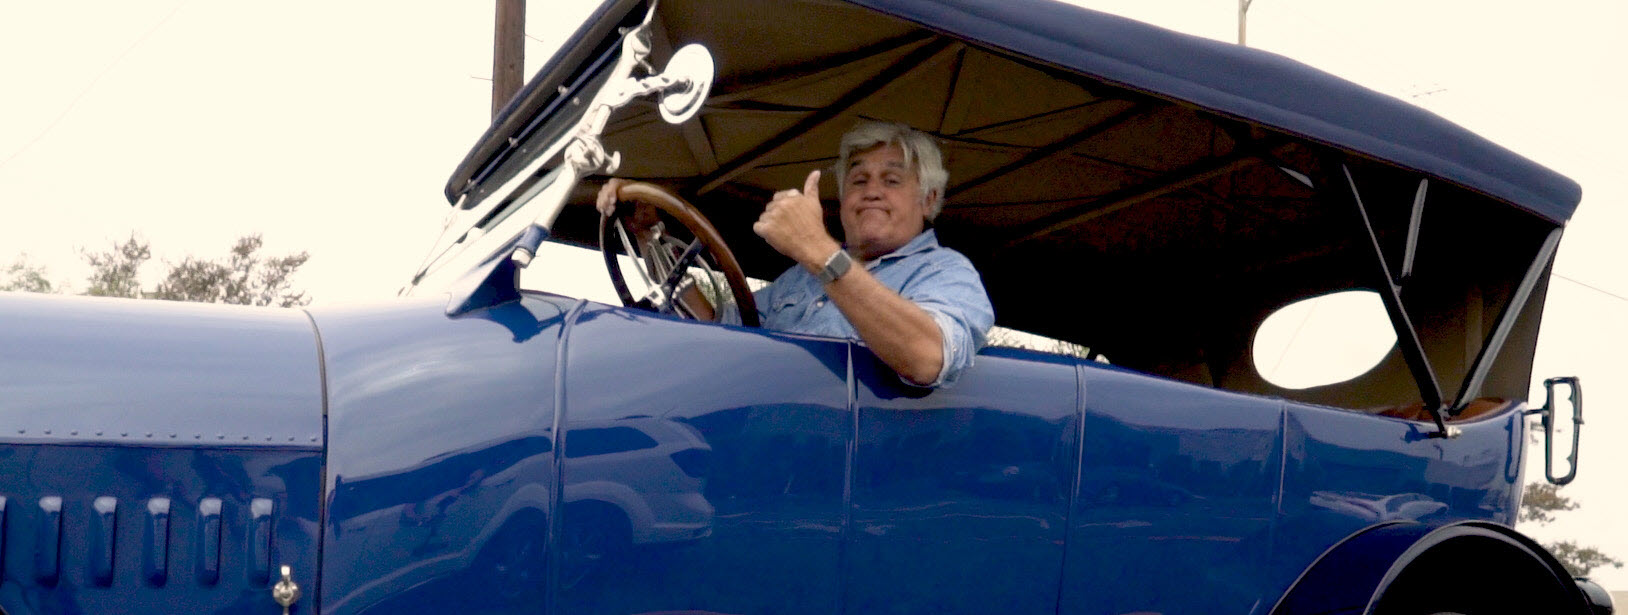 Jay Leno's Garage Achieves Antique Car Replacement Part for